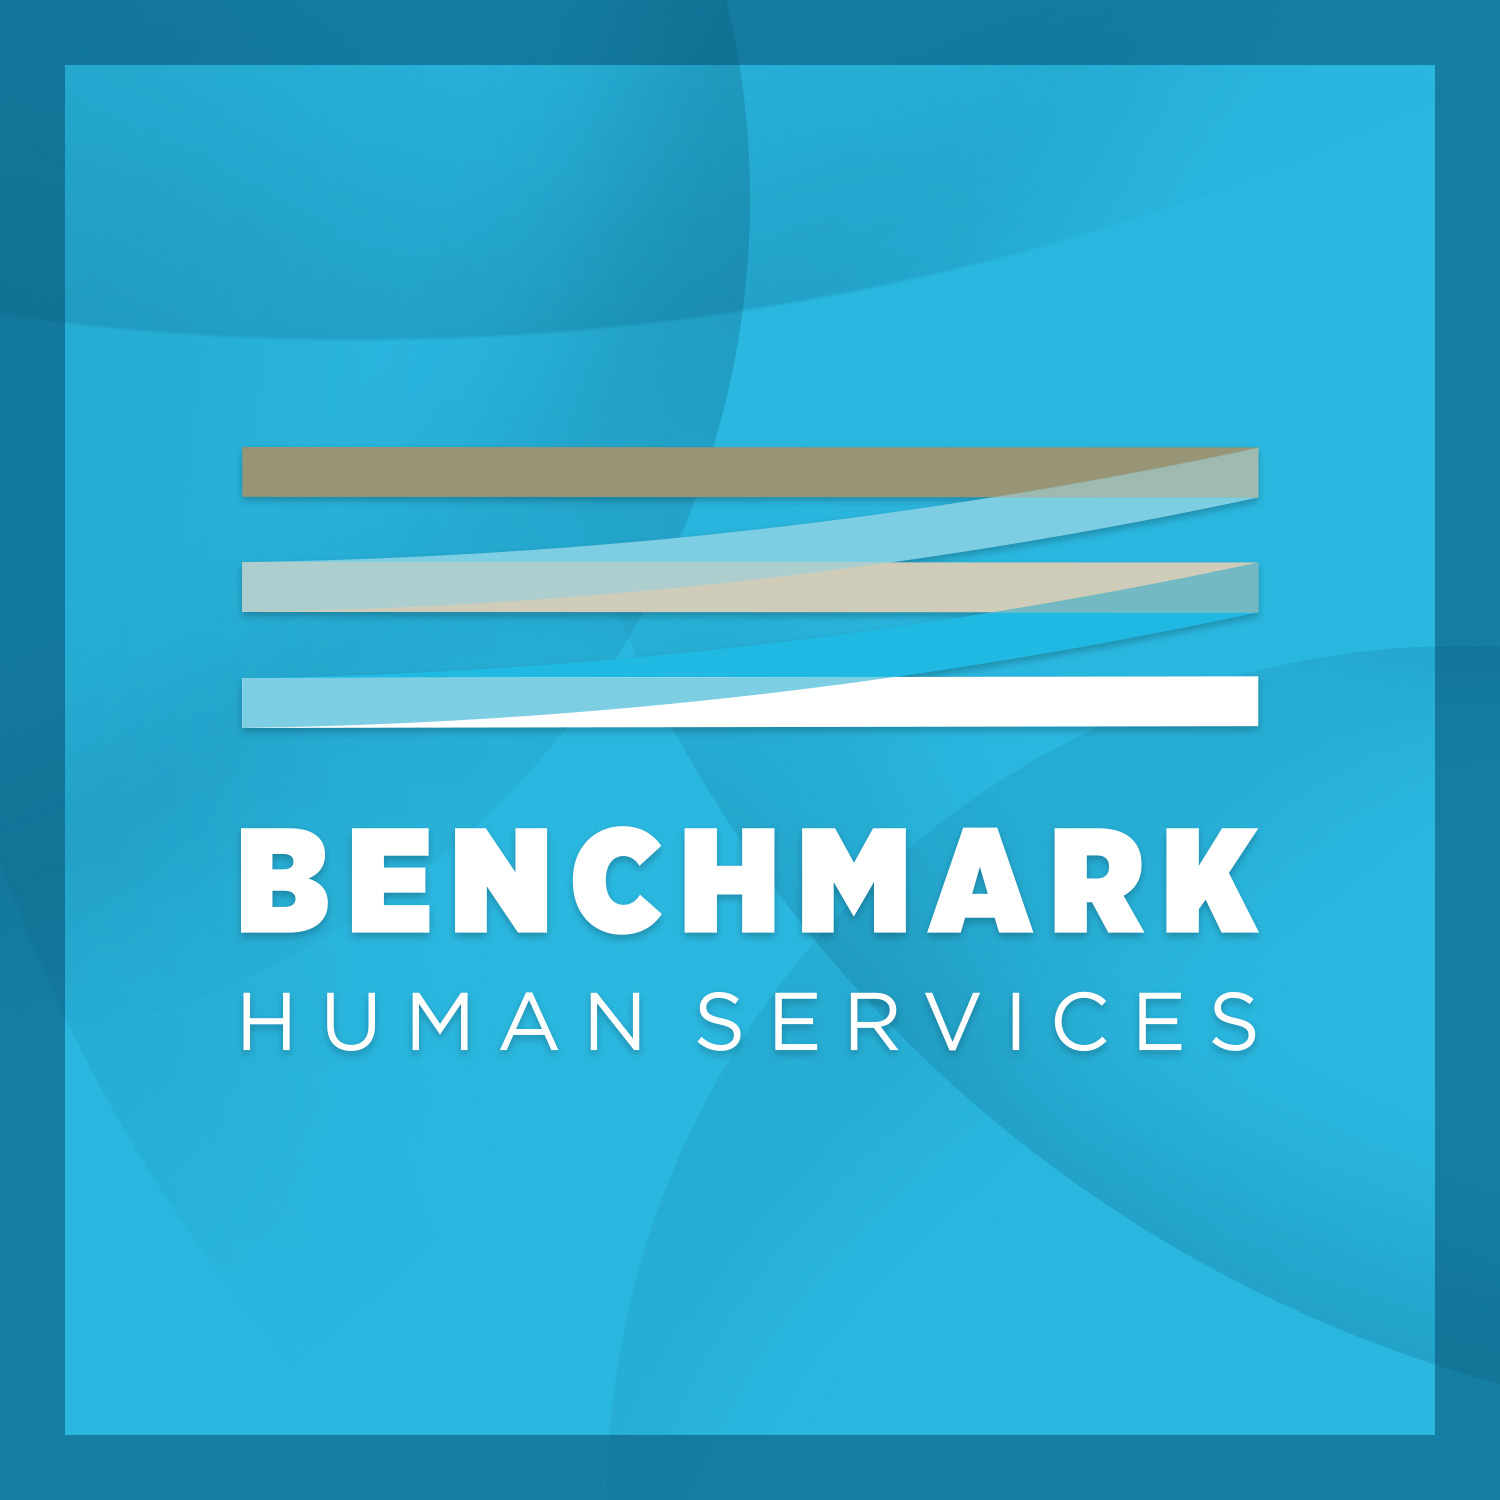 Benchmark and StationMD Join Forces for Indiana's First-In-Kind Partnership to Improve Medical Care for Residents with Disabilities